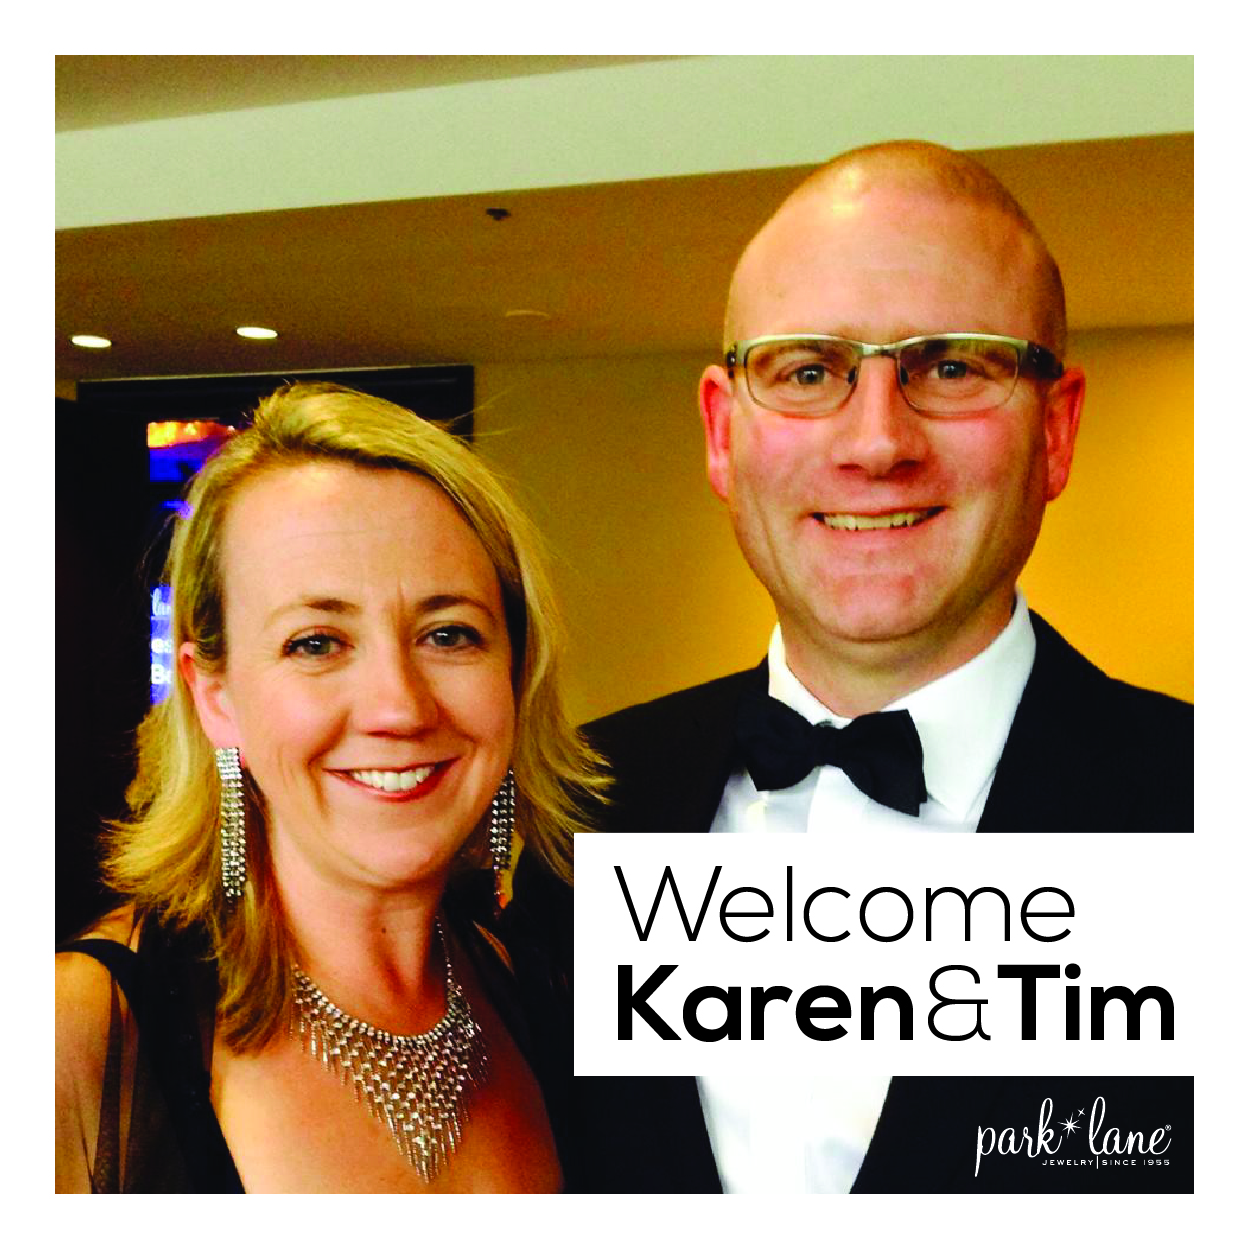 Park Lane welcomes Karen & Tim!